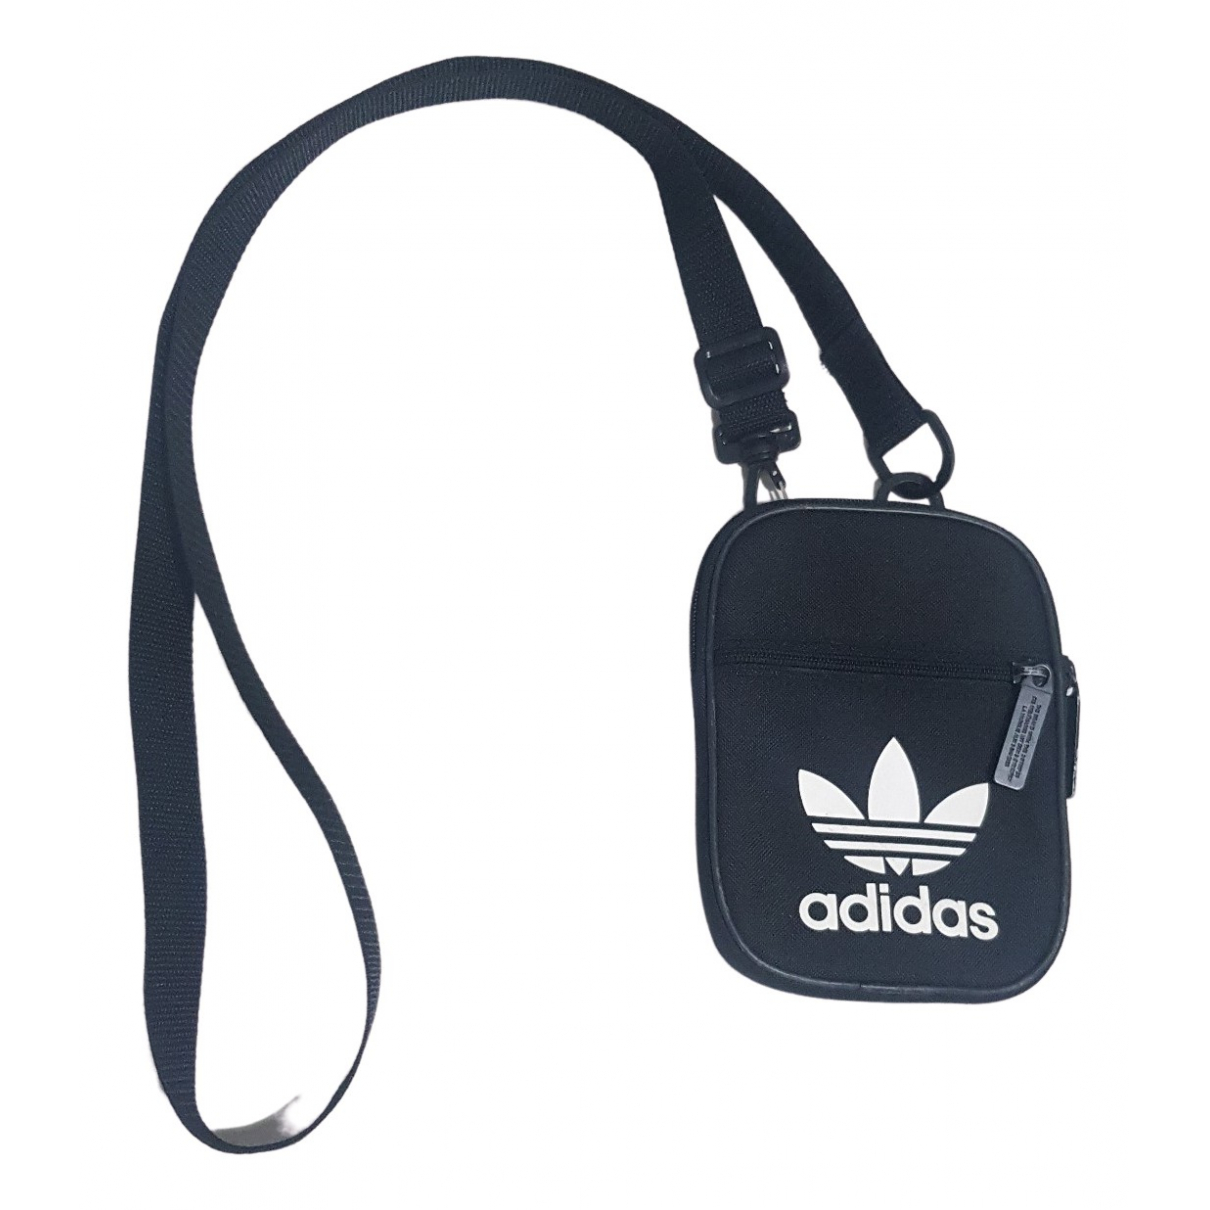 Adidas N Black Cotton Small bag, wallet & cases for Men N